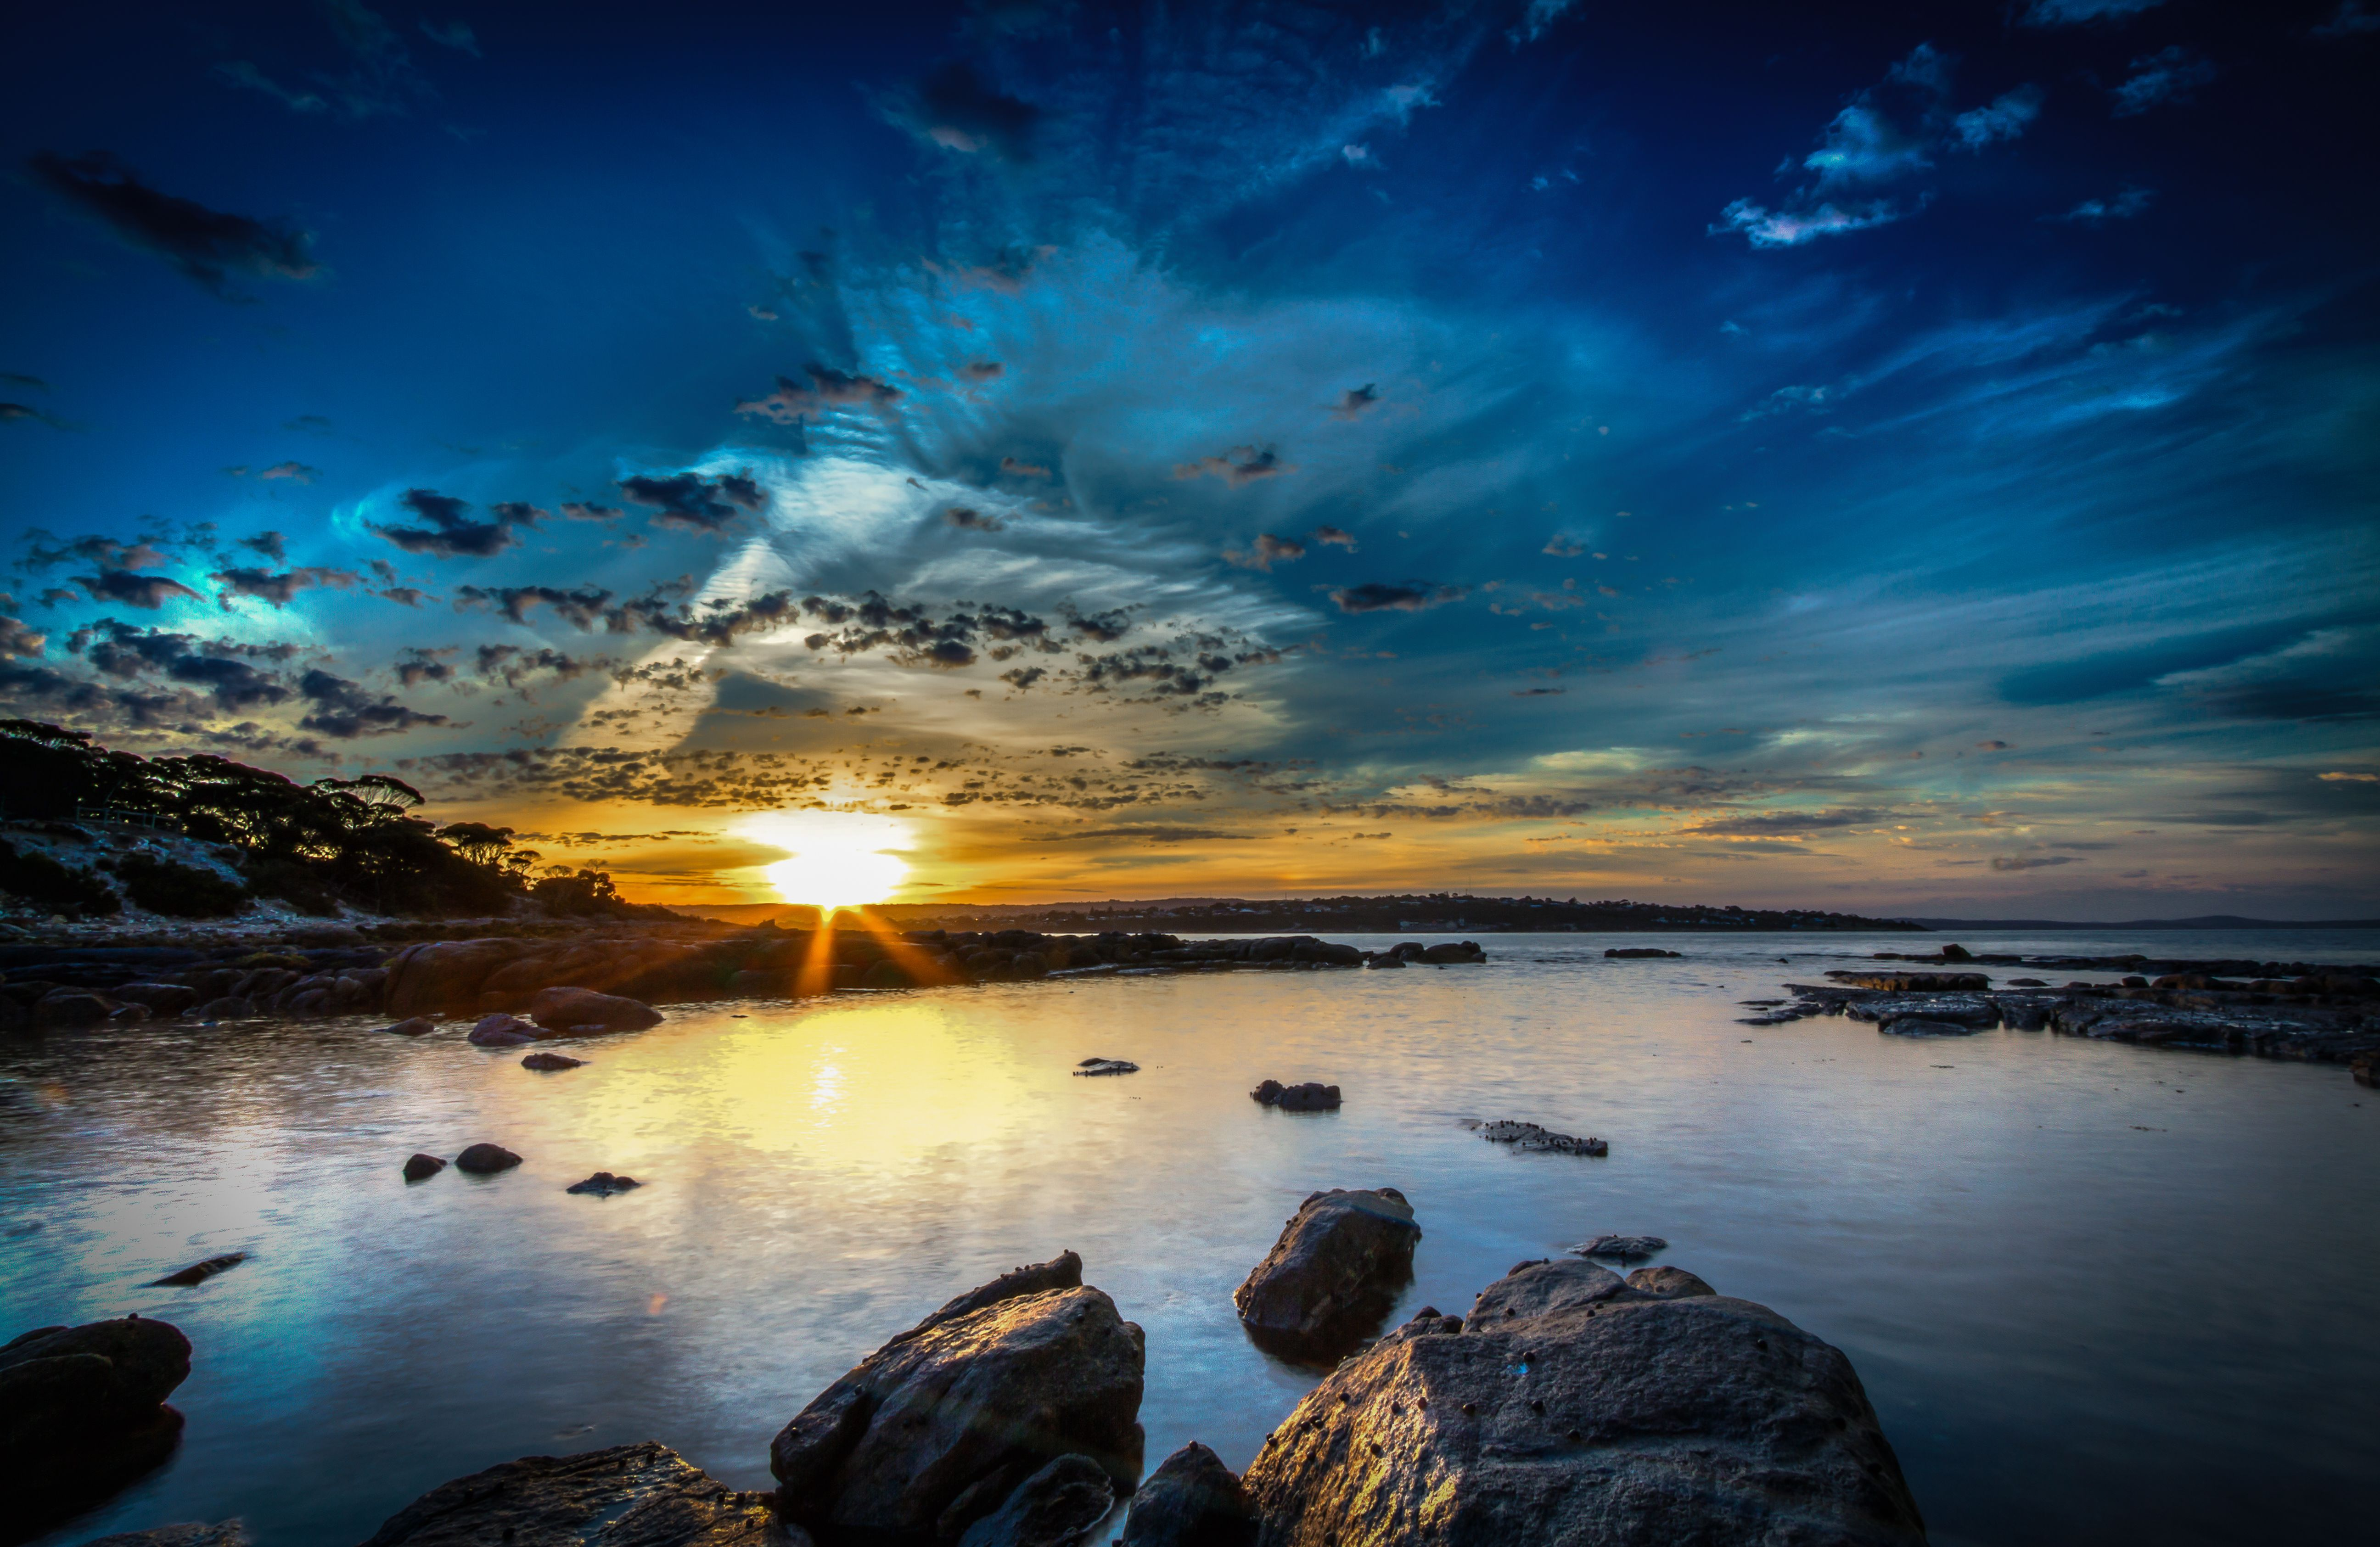 File:Sunset - Billy Lights Point, Port Lincoln - South Australia ...